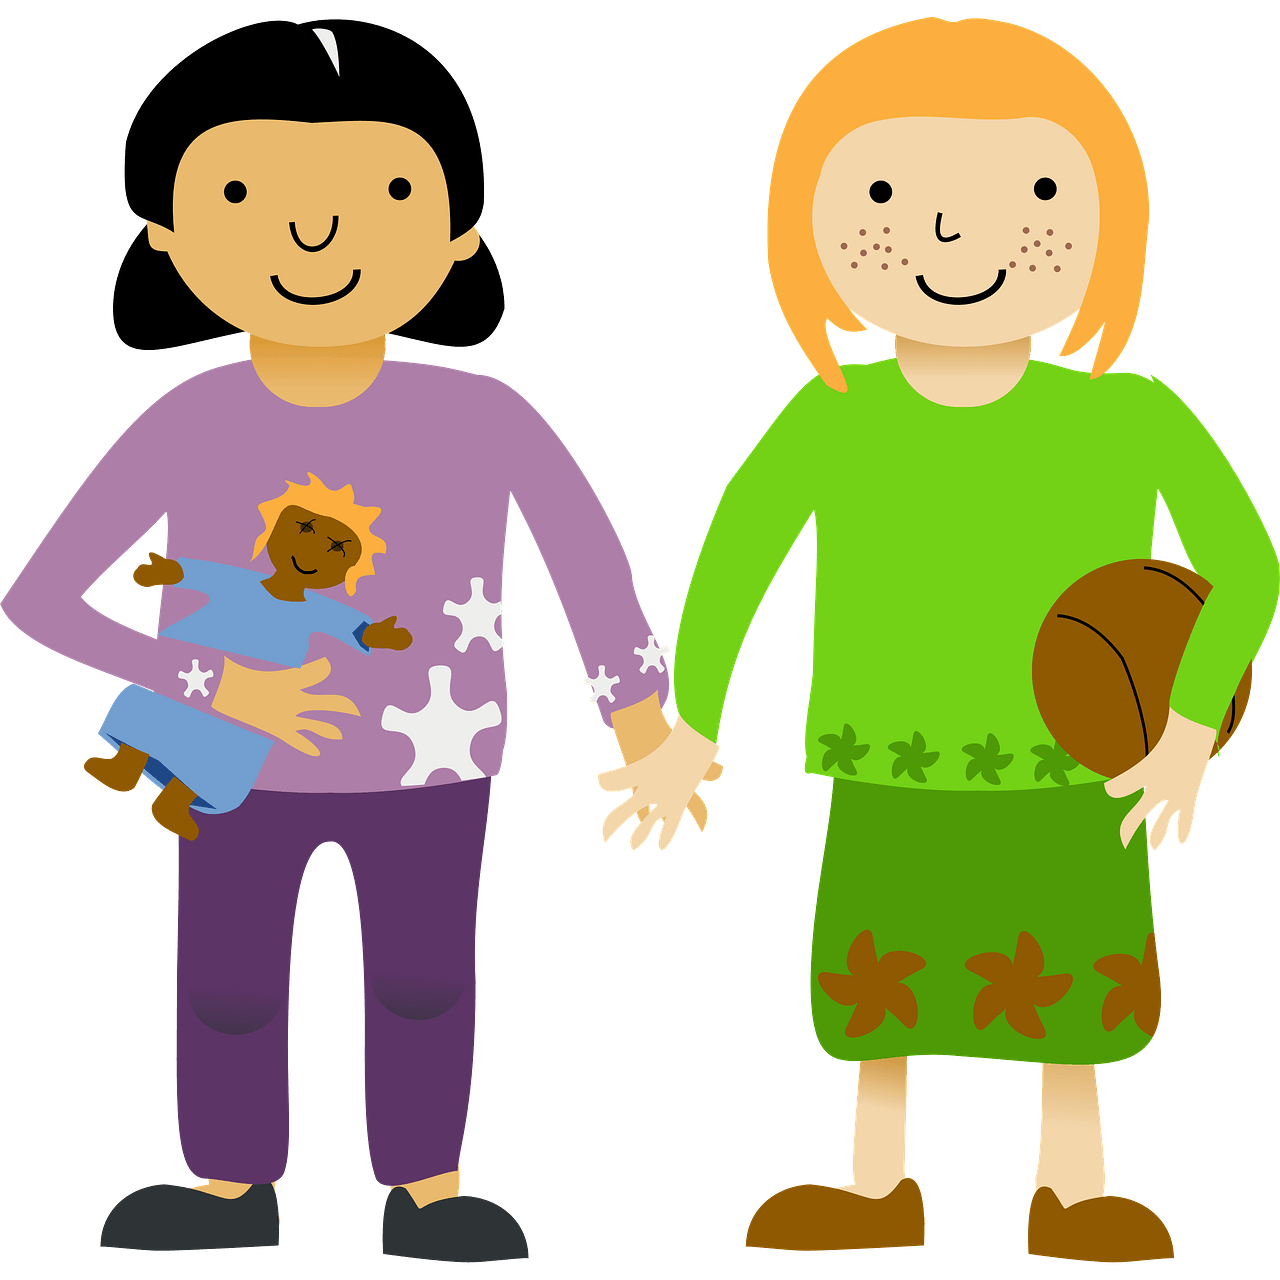 Two little girls clipart. Free download..